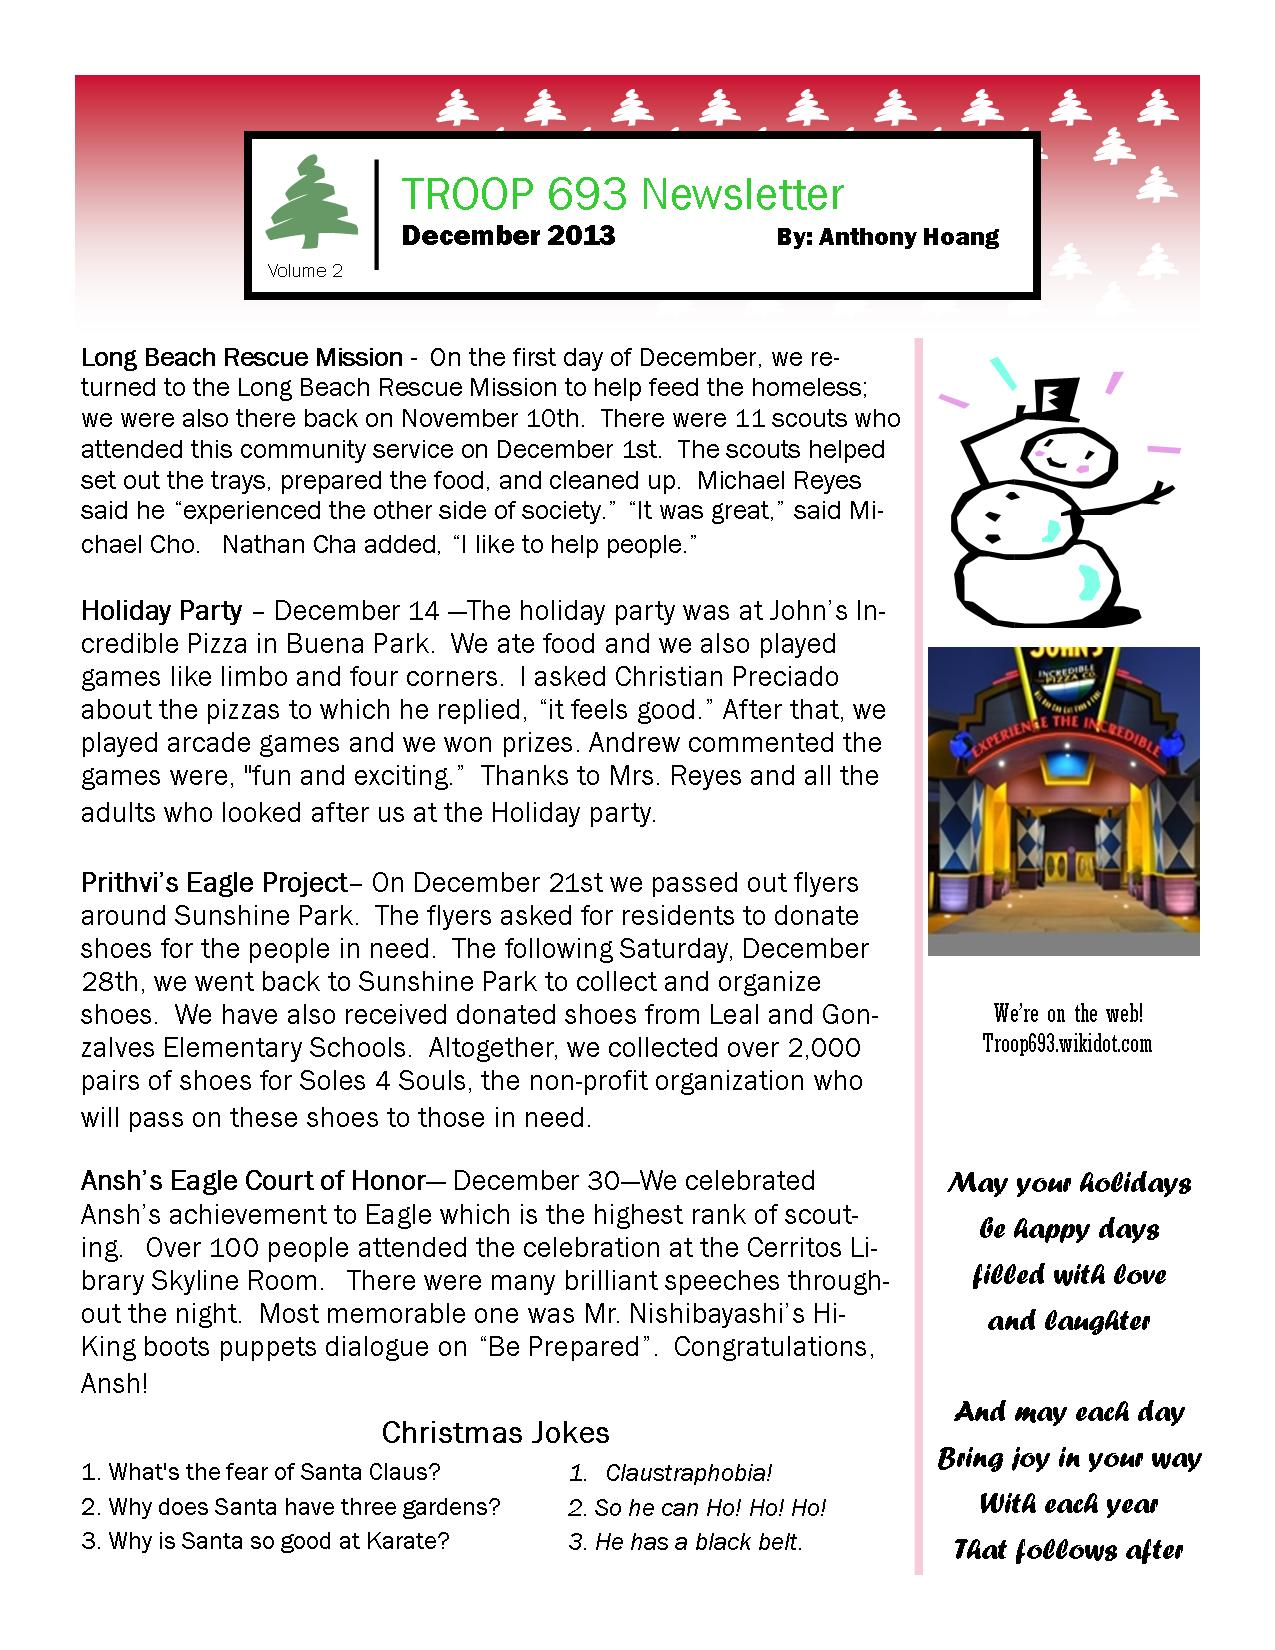 newsletter_2013dec.jpg